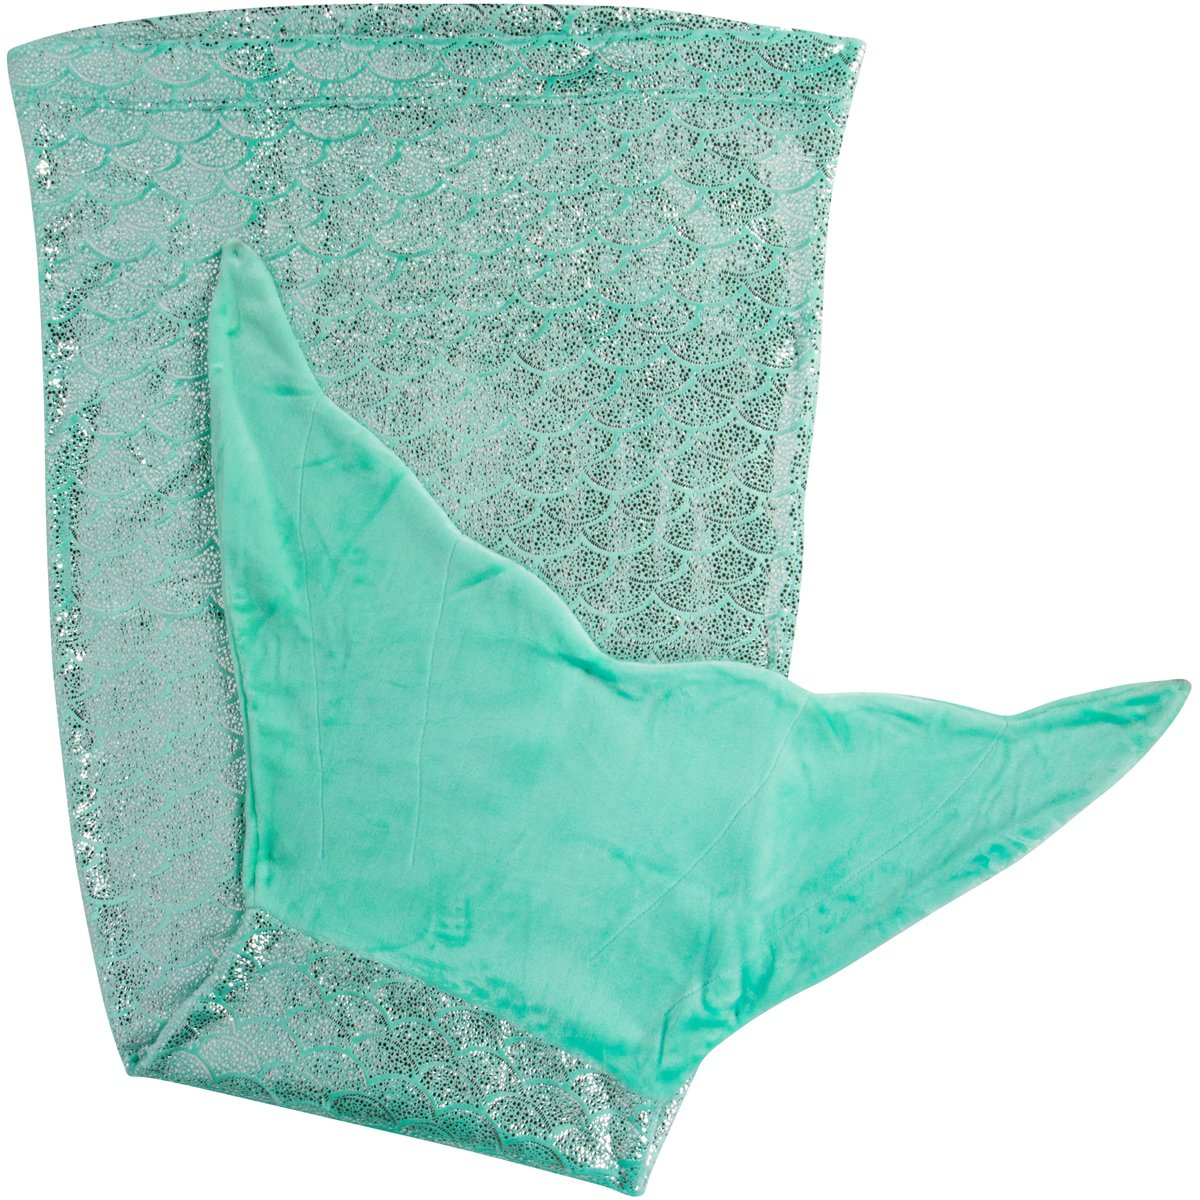 1e0a42eb6a PixieCrush Mermaid Tail Blanket for Teenagers/Adults & Kids Thick ...